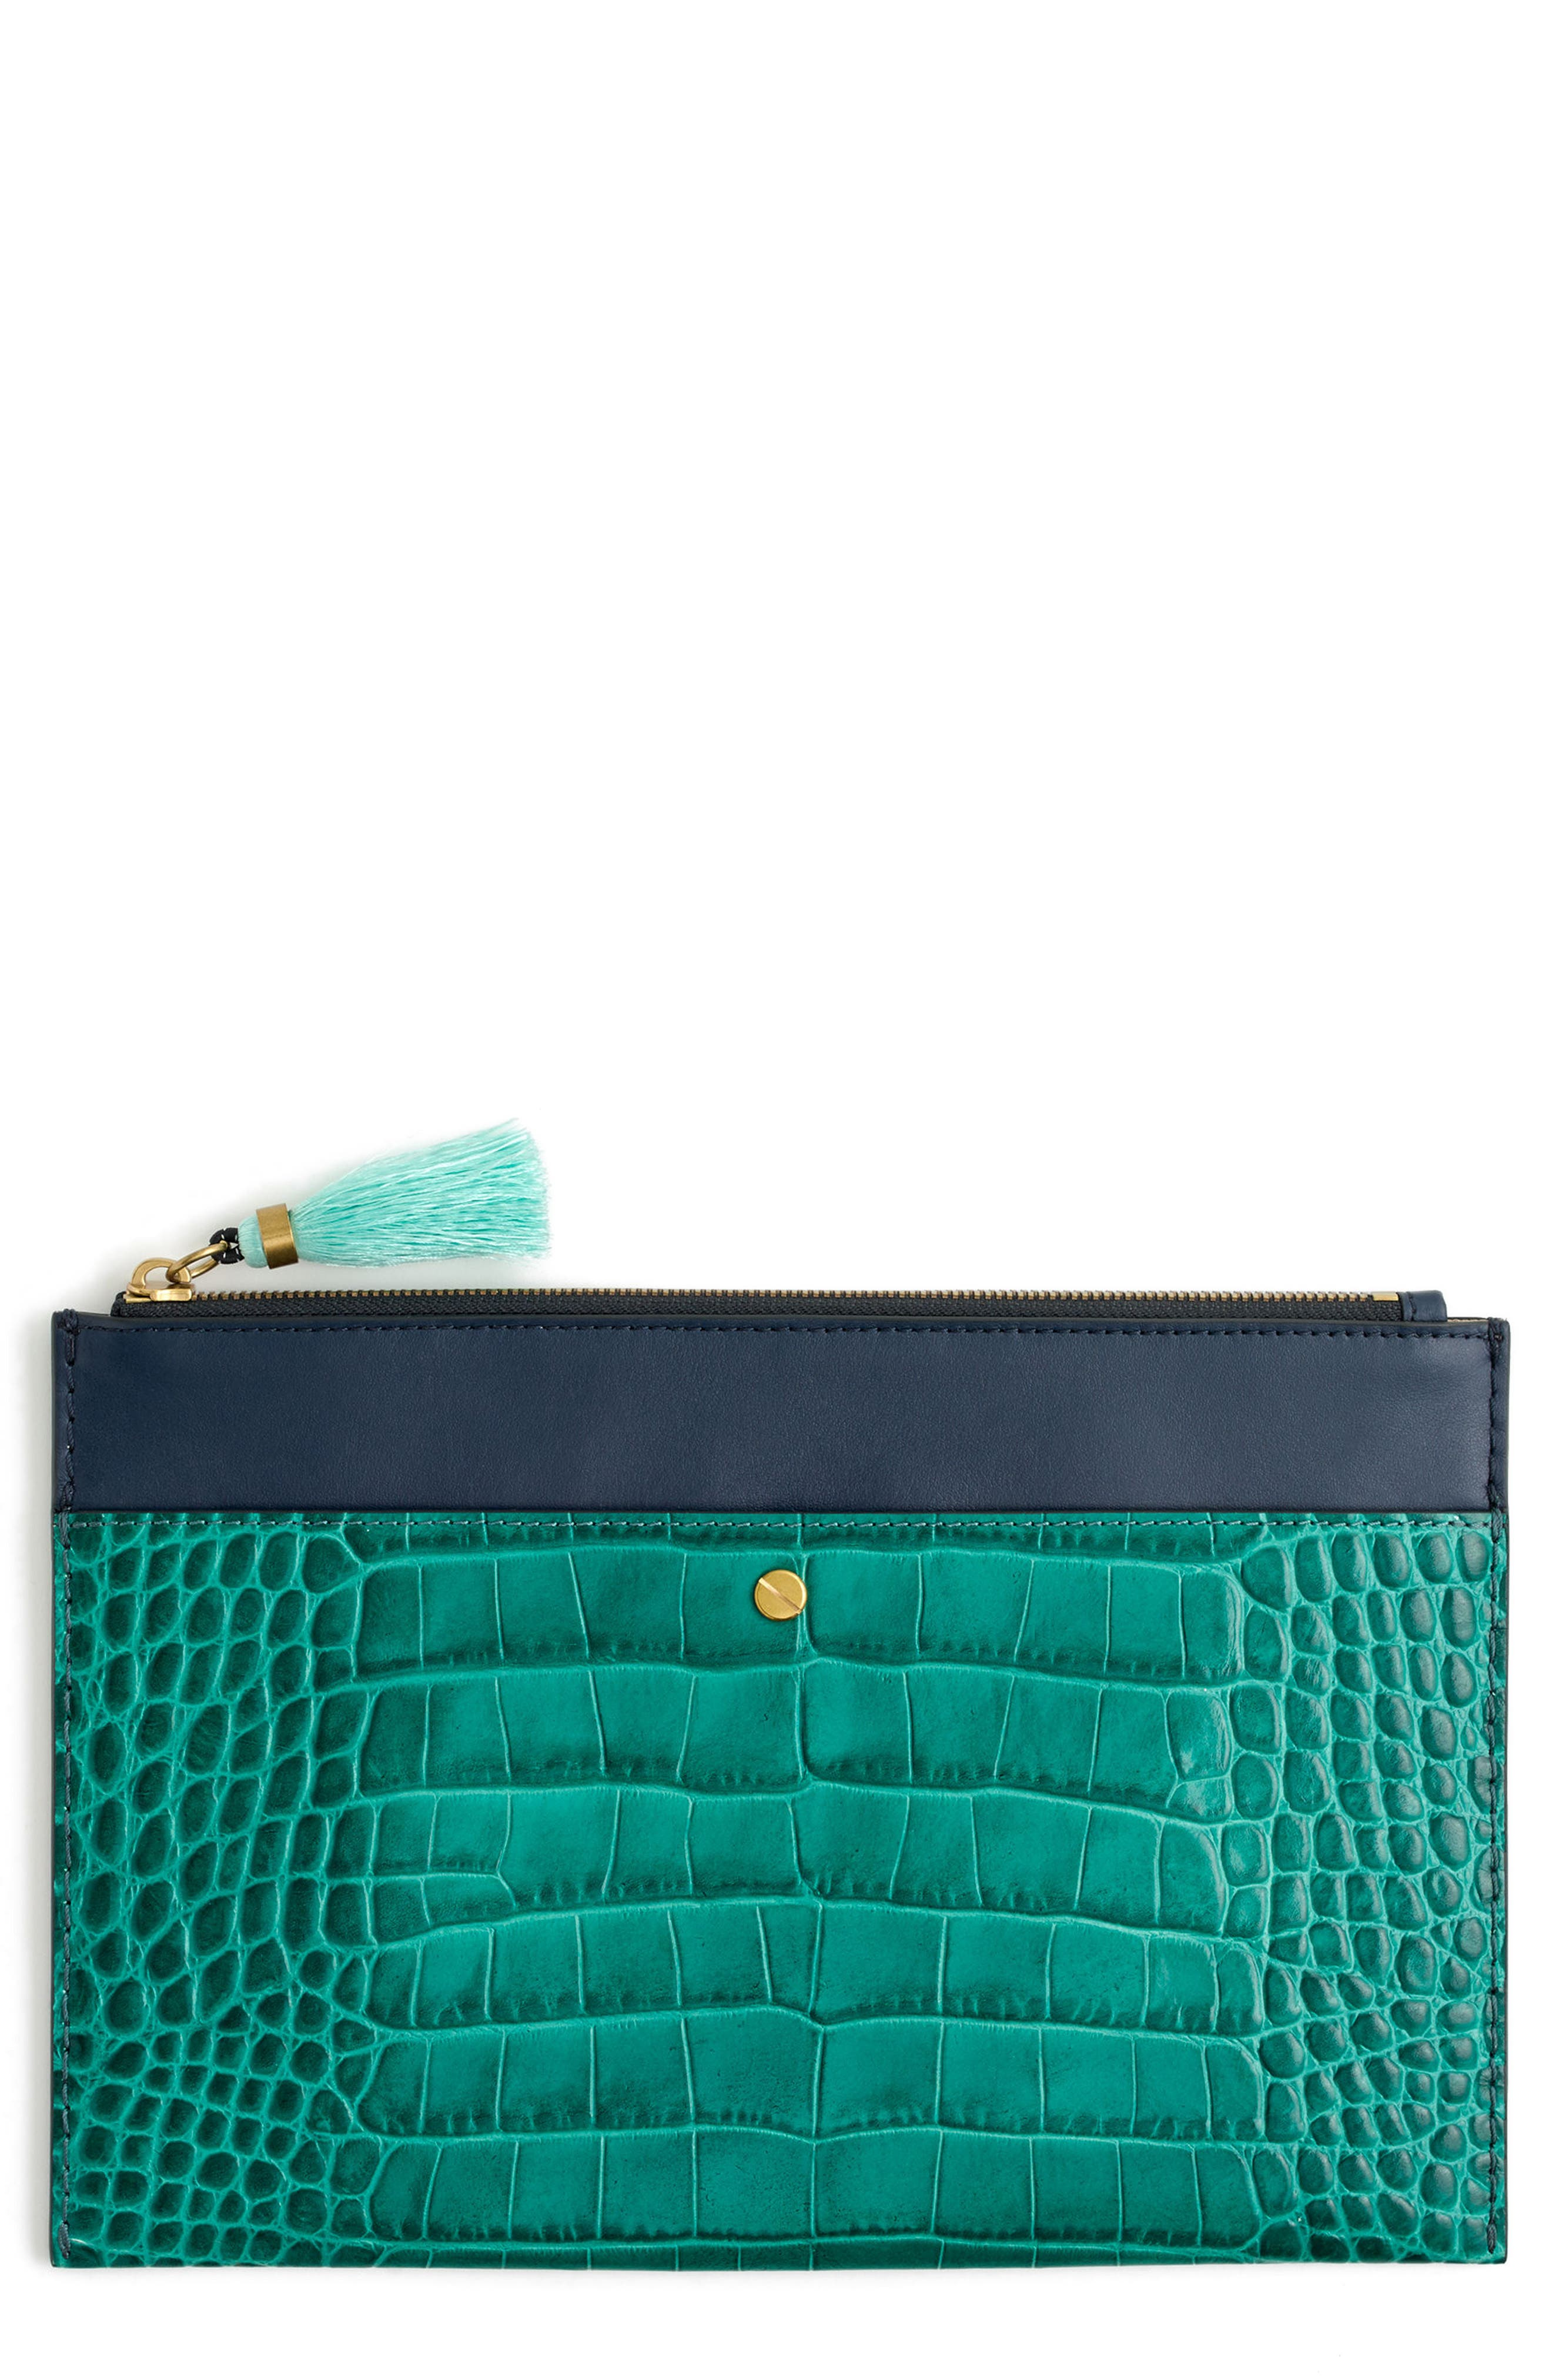 J.Crew Large Stamped Croc Leather Pouch,                             Main thumbnail 1, color,                             Peacock Blue